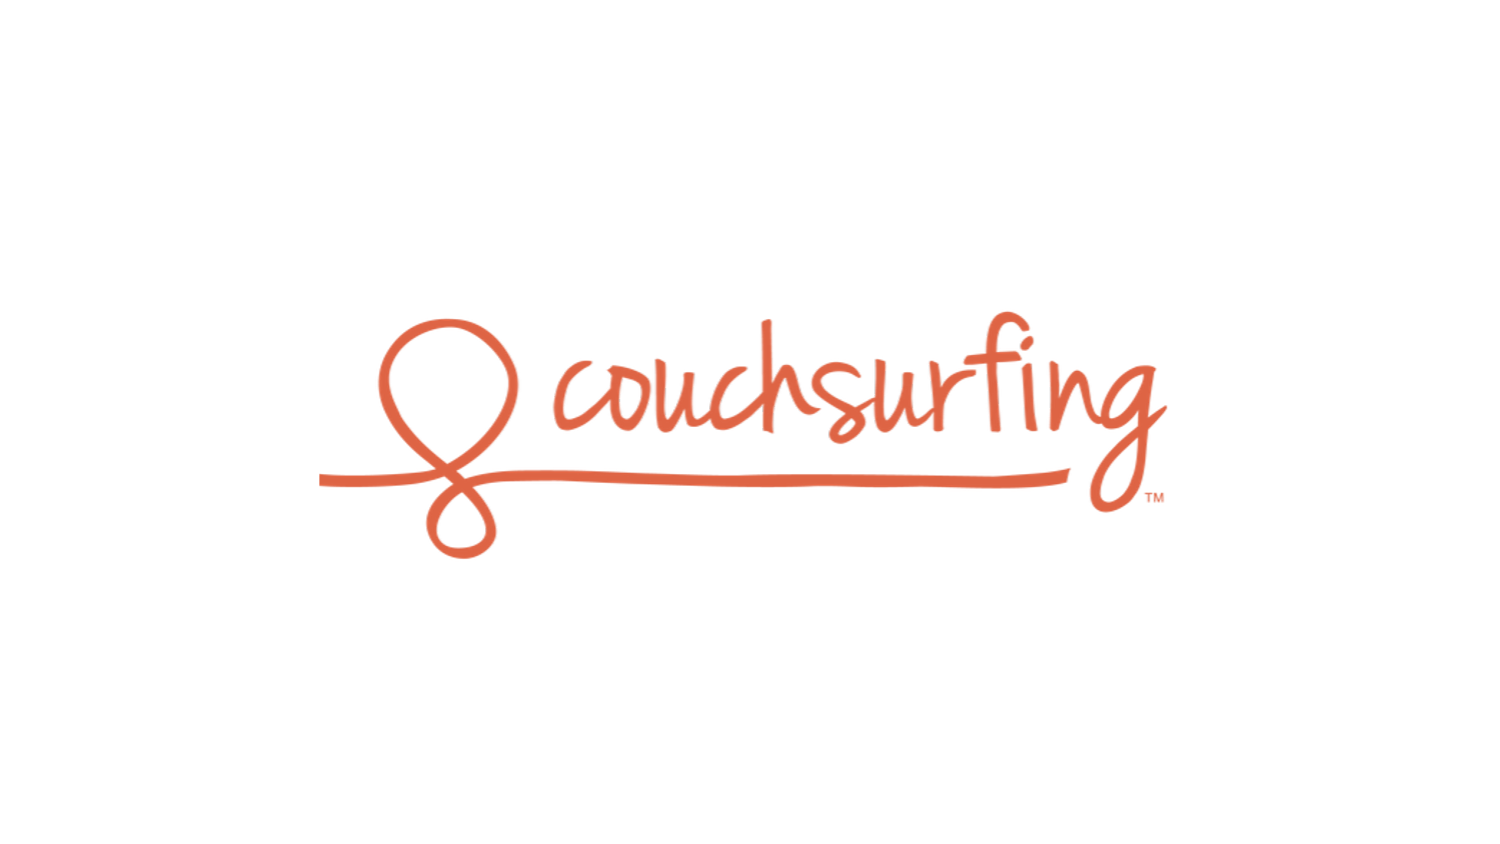 Stay with Locals.. - Couchsurfing envisions a world made better by travel, fostering cultural exchange and mutual respect.